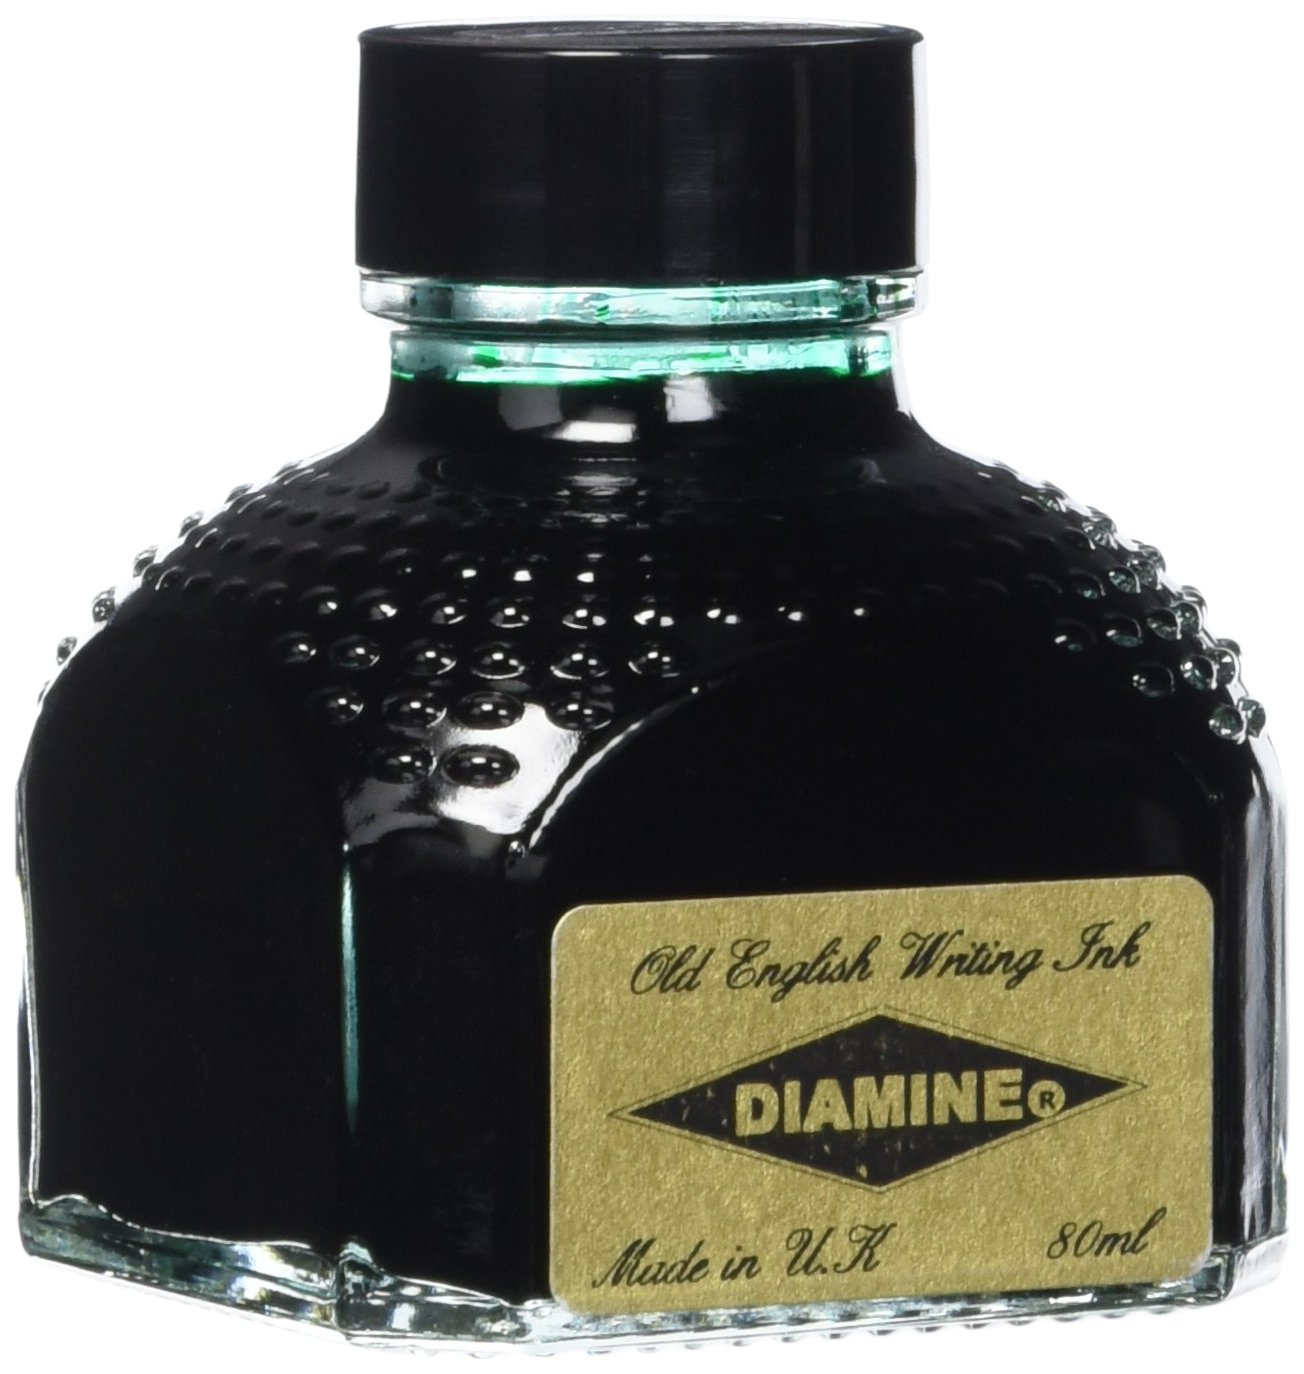 Diamine - Inchiostro per penna stilografica, Ancient Copper 80ml 088